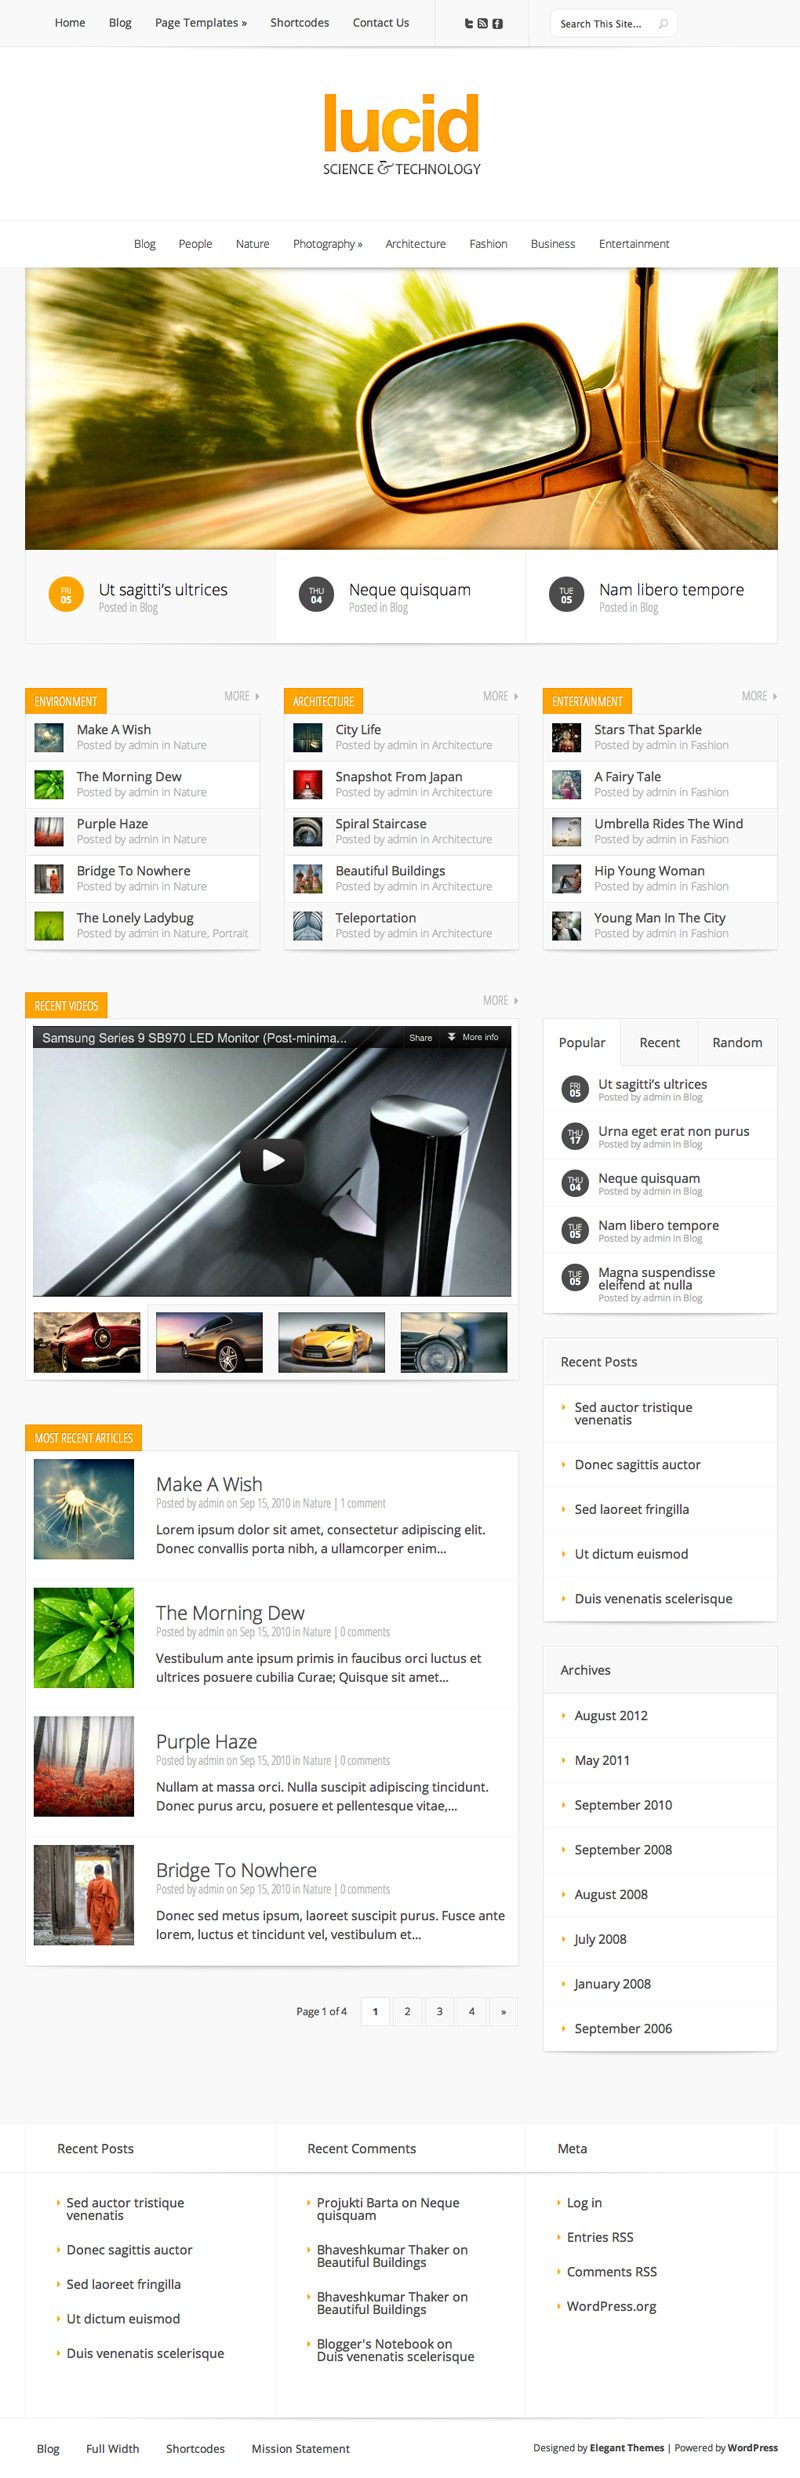 Designed by elegant themes powered by wordpress - Other Themes